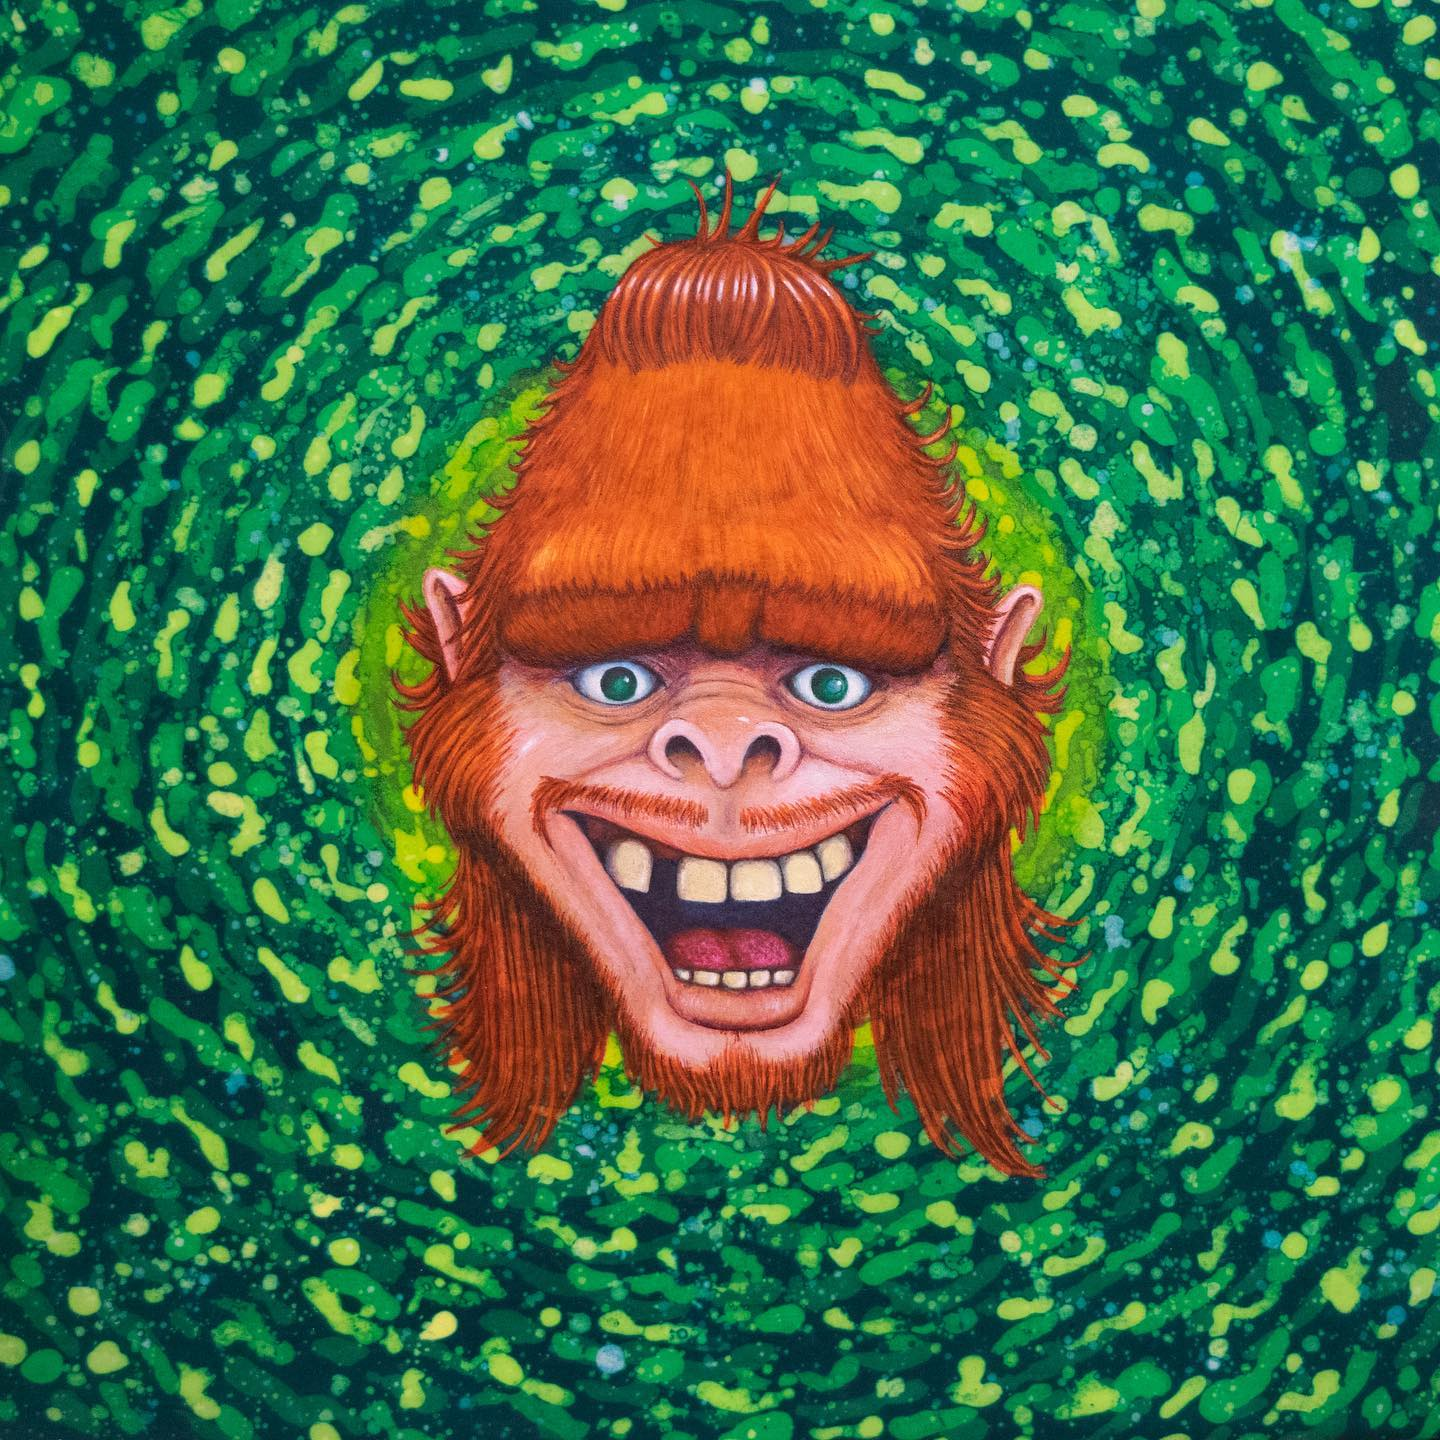 An artwork of a monkey-like face with a beanie hat in a field of swirling green color